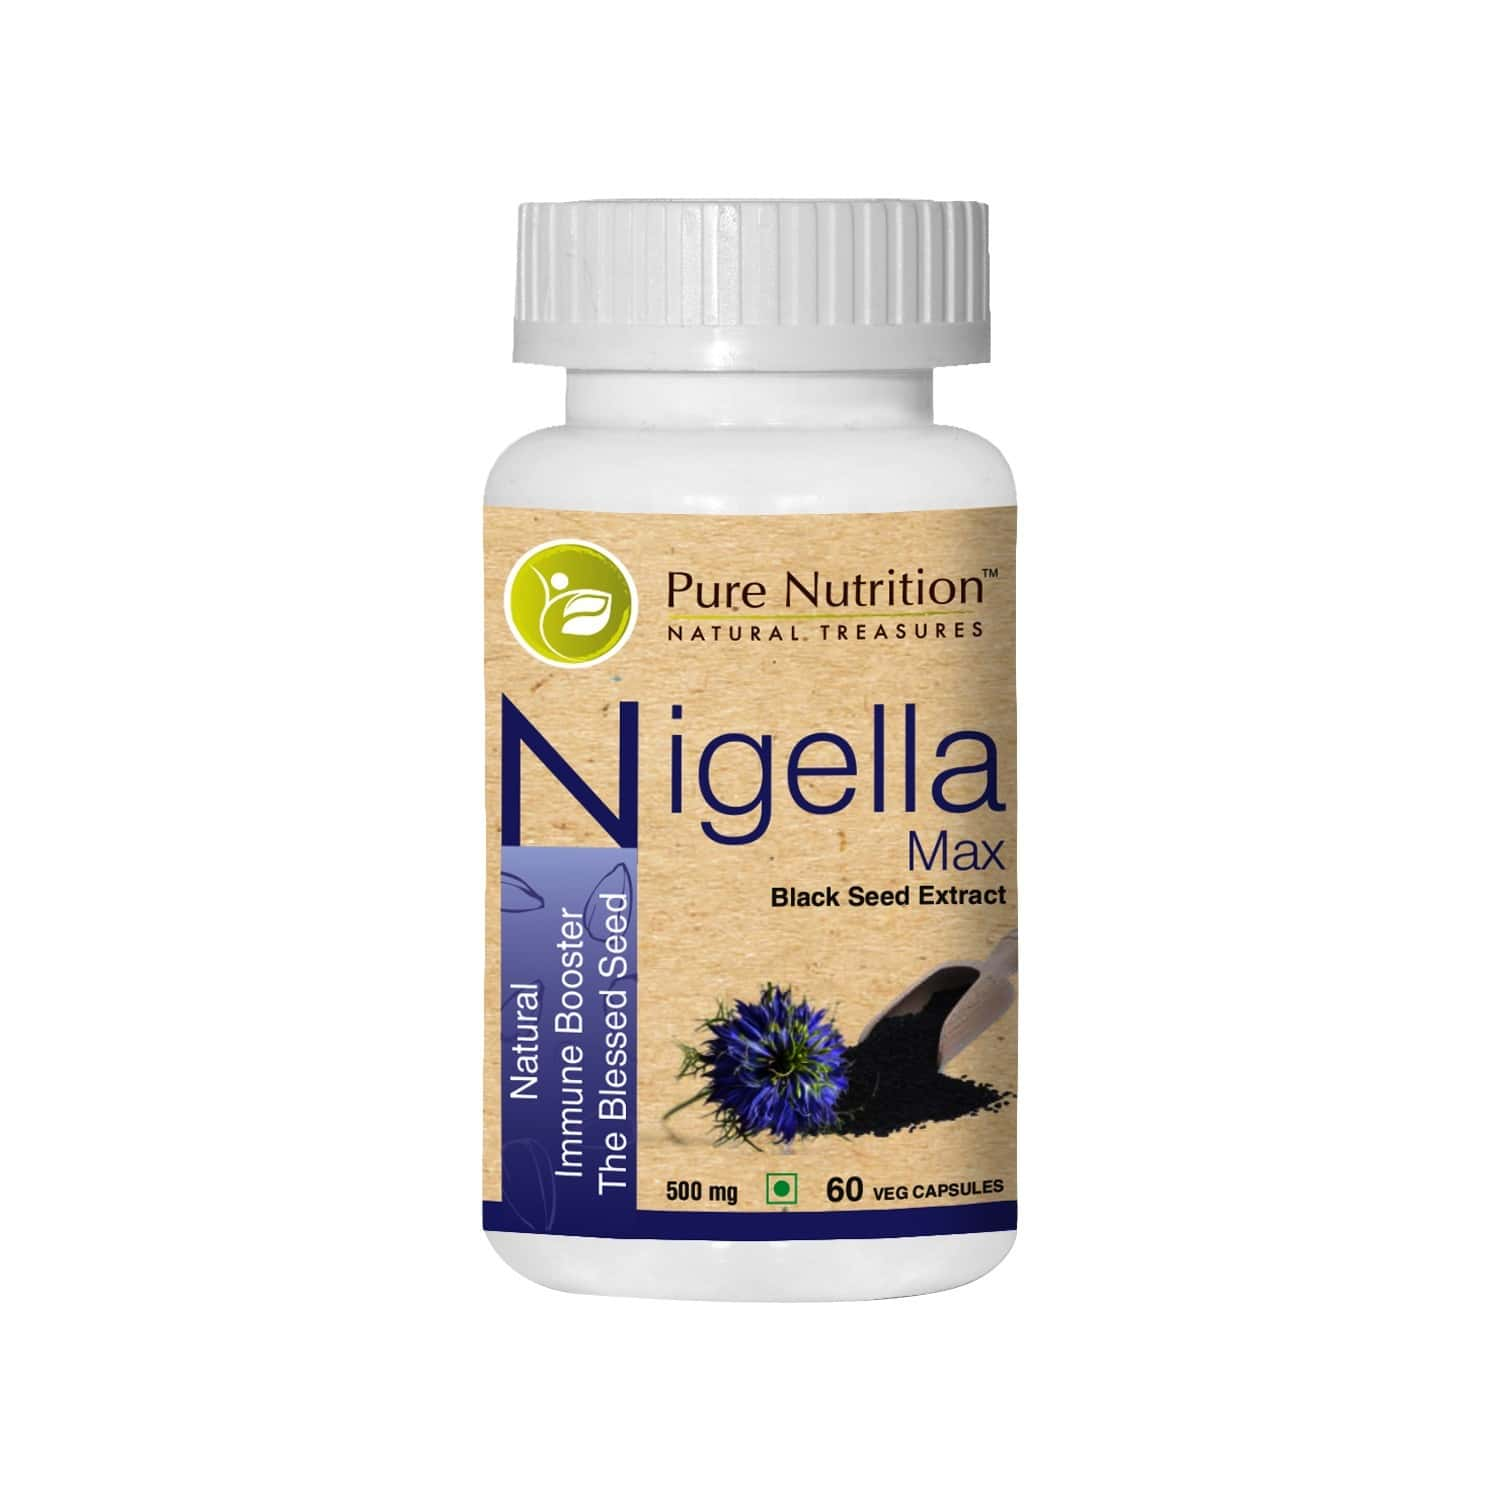 Pure Nutrition Nigella Max (natural Immune Booster The Black Seed) - 60 Caps